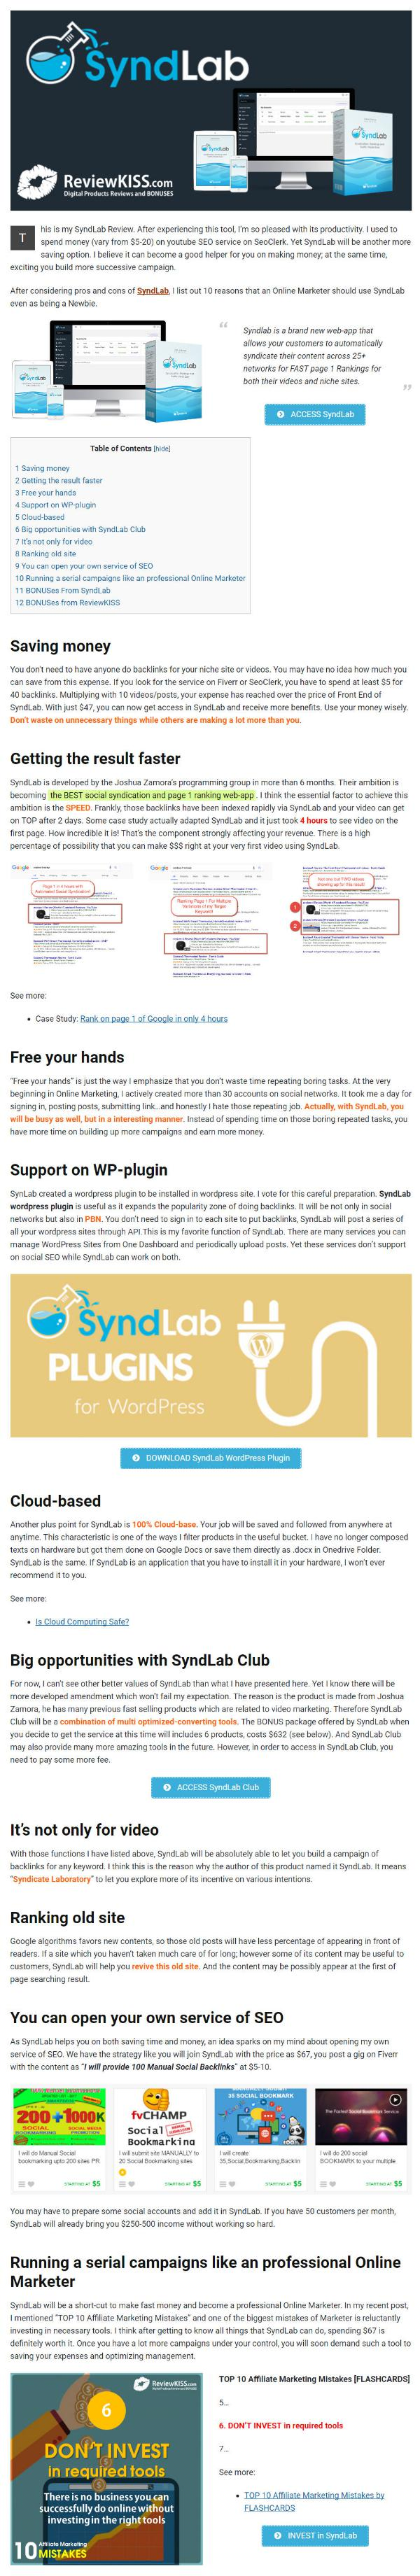 SyndLab Review and 10 Reasons Online Marketer Should Use SyndLab by RevieKISS.com